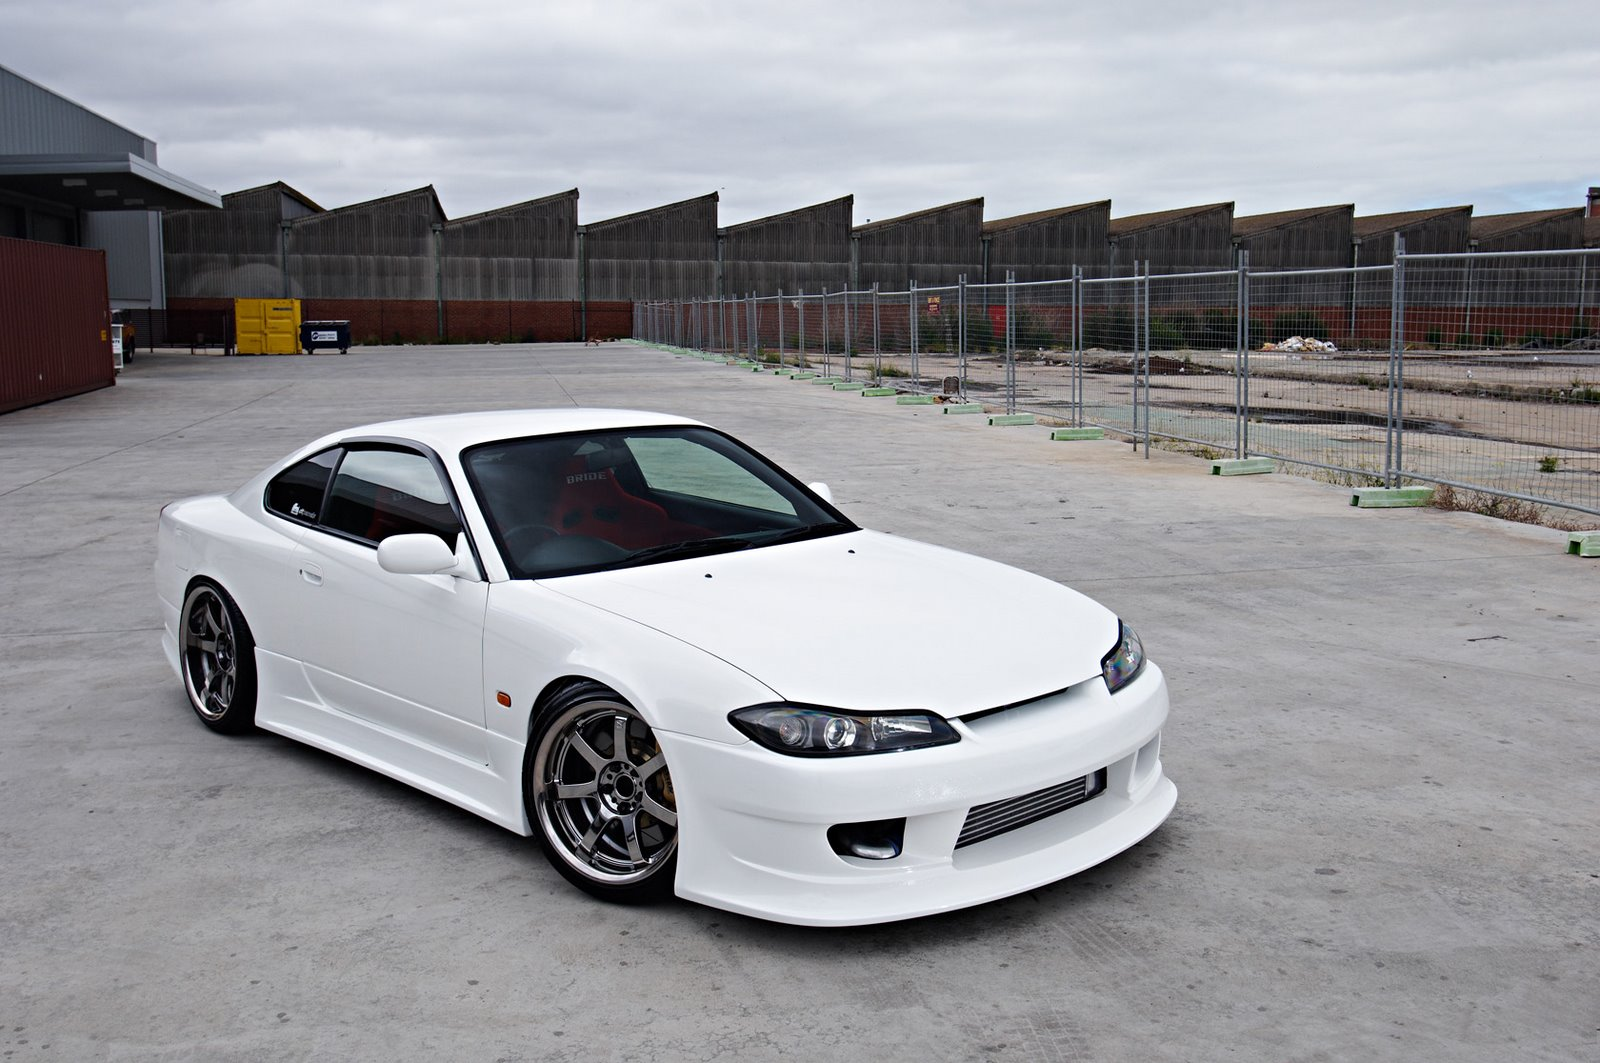 Nissan S15 Silvia Picture 13 Reviews News Specs Buy Car